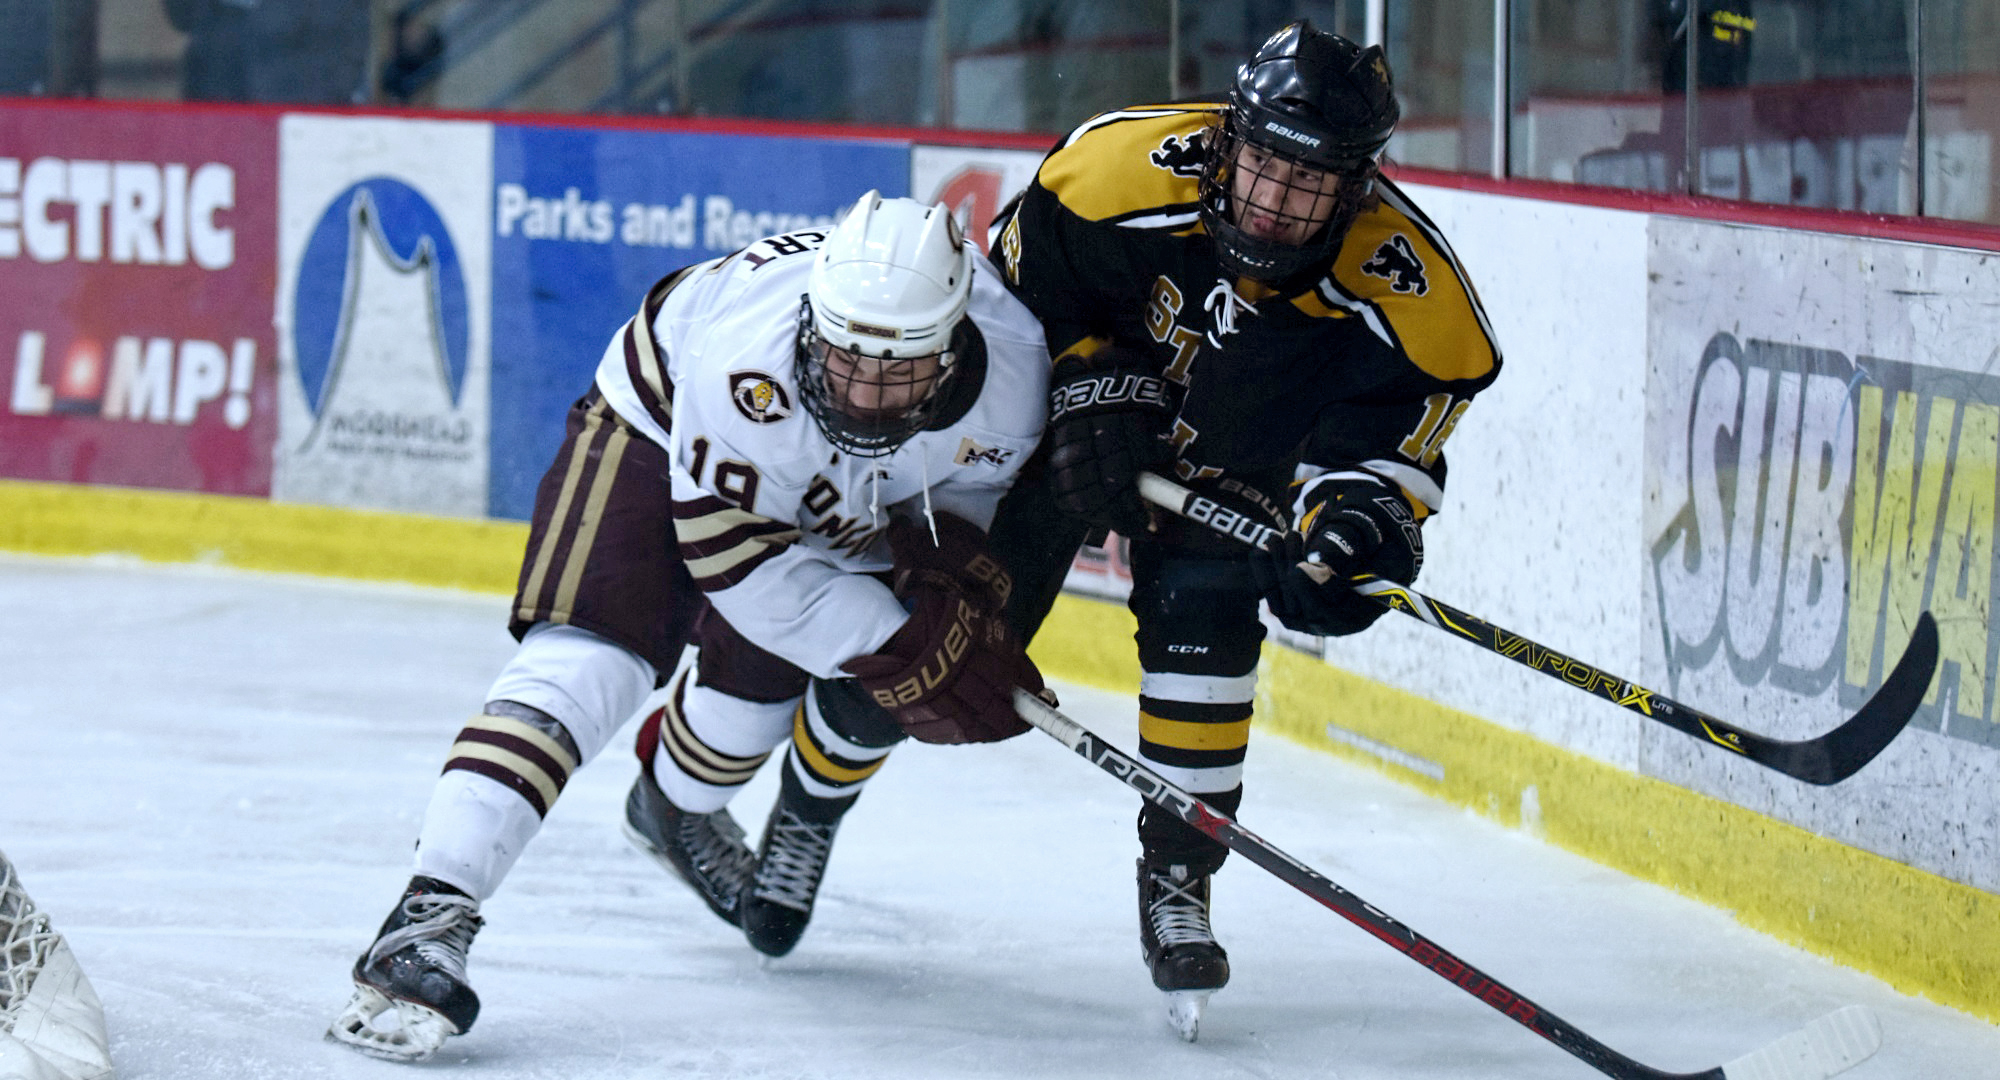 Sophomore Tyler Bossert tangles with one of the St. Olaf players during the Cobbers' 4-2 win. Bossert had a goal and two assists to help CC to the series sweep.